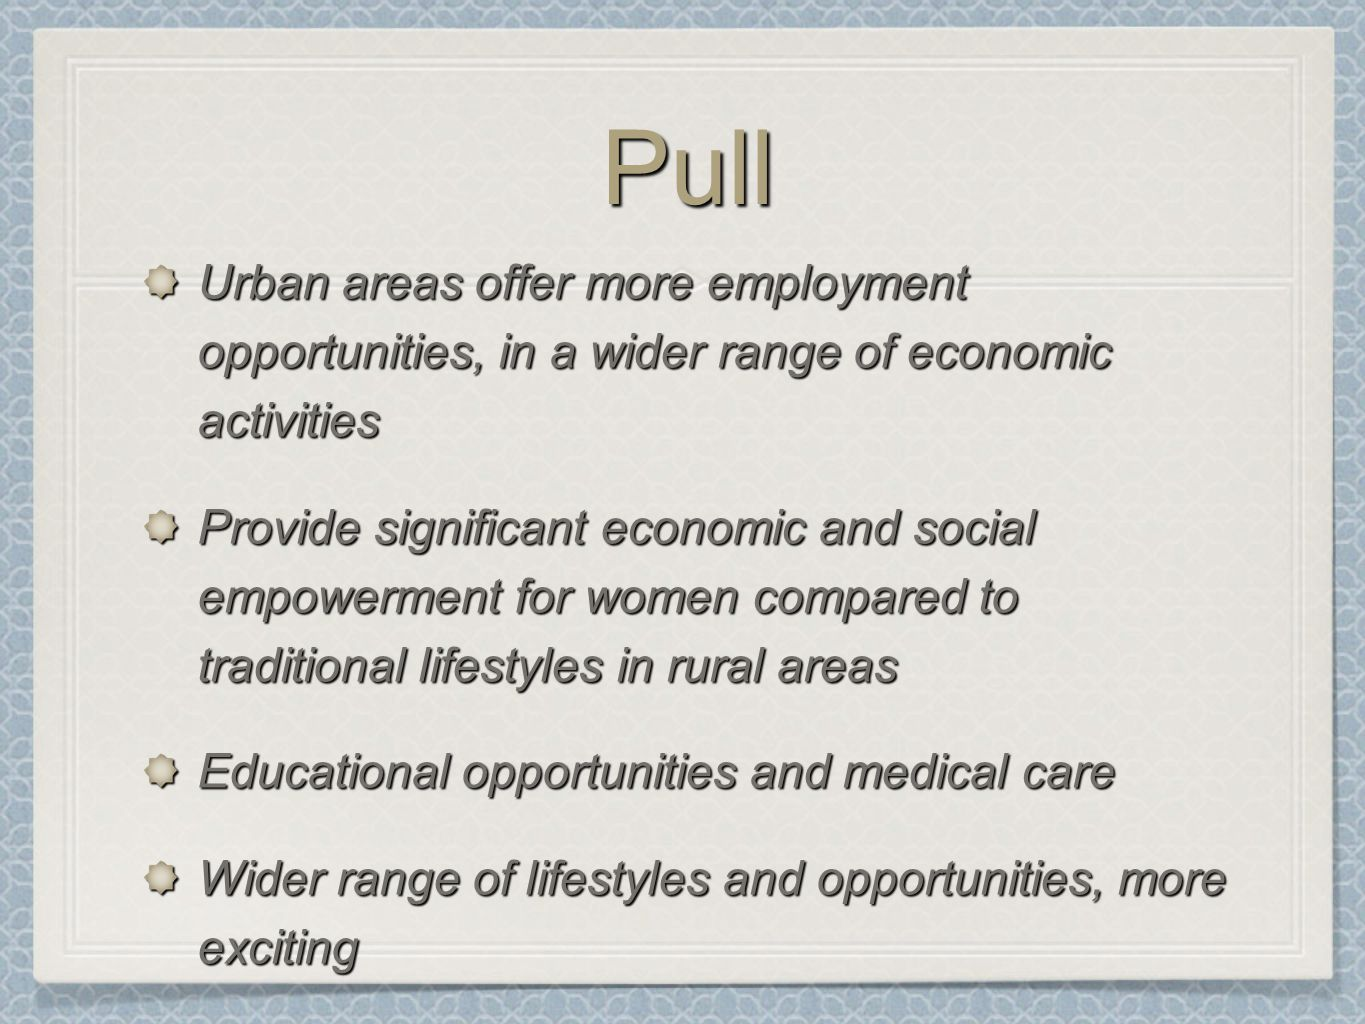 PullPull Urban areas offer more employment opportunities, in a wider range of economic activities Provide significant economic and social empowerment